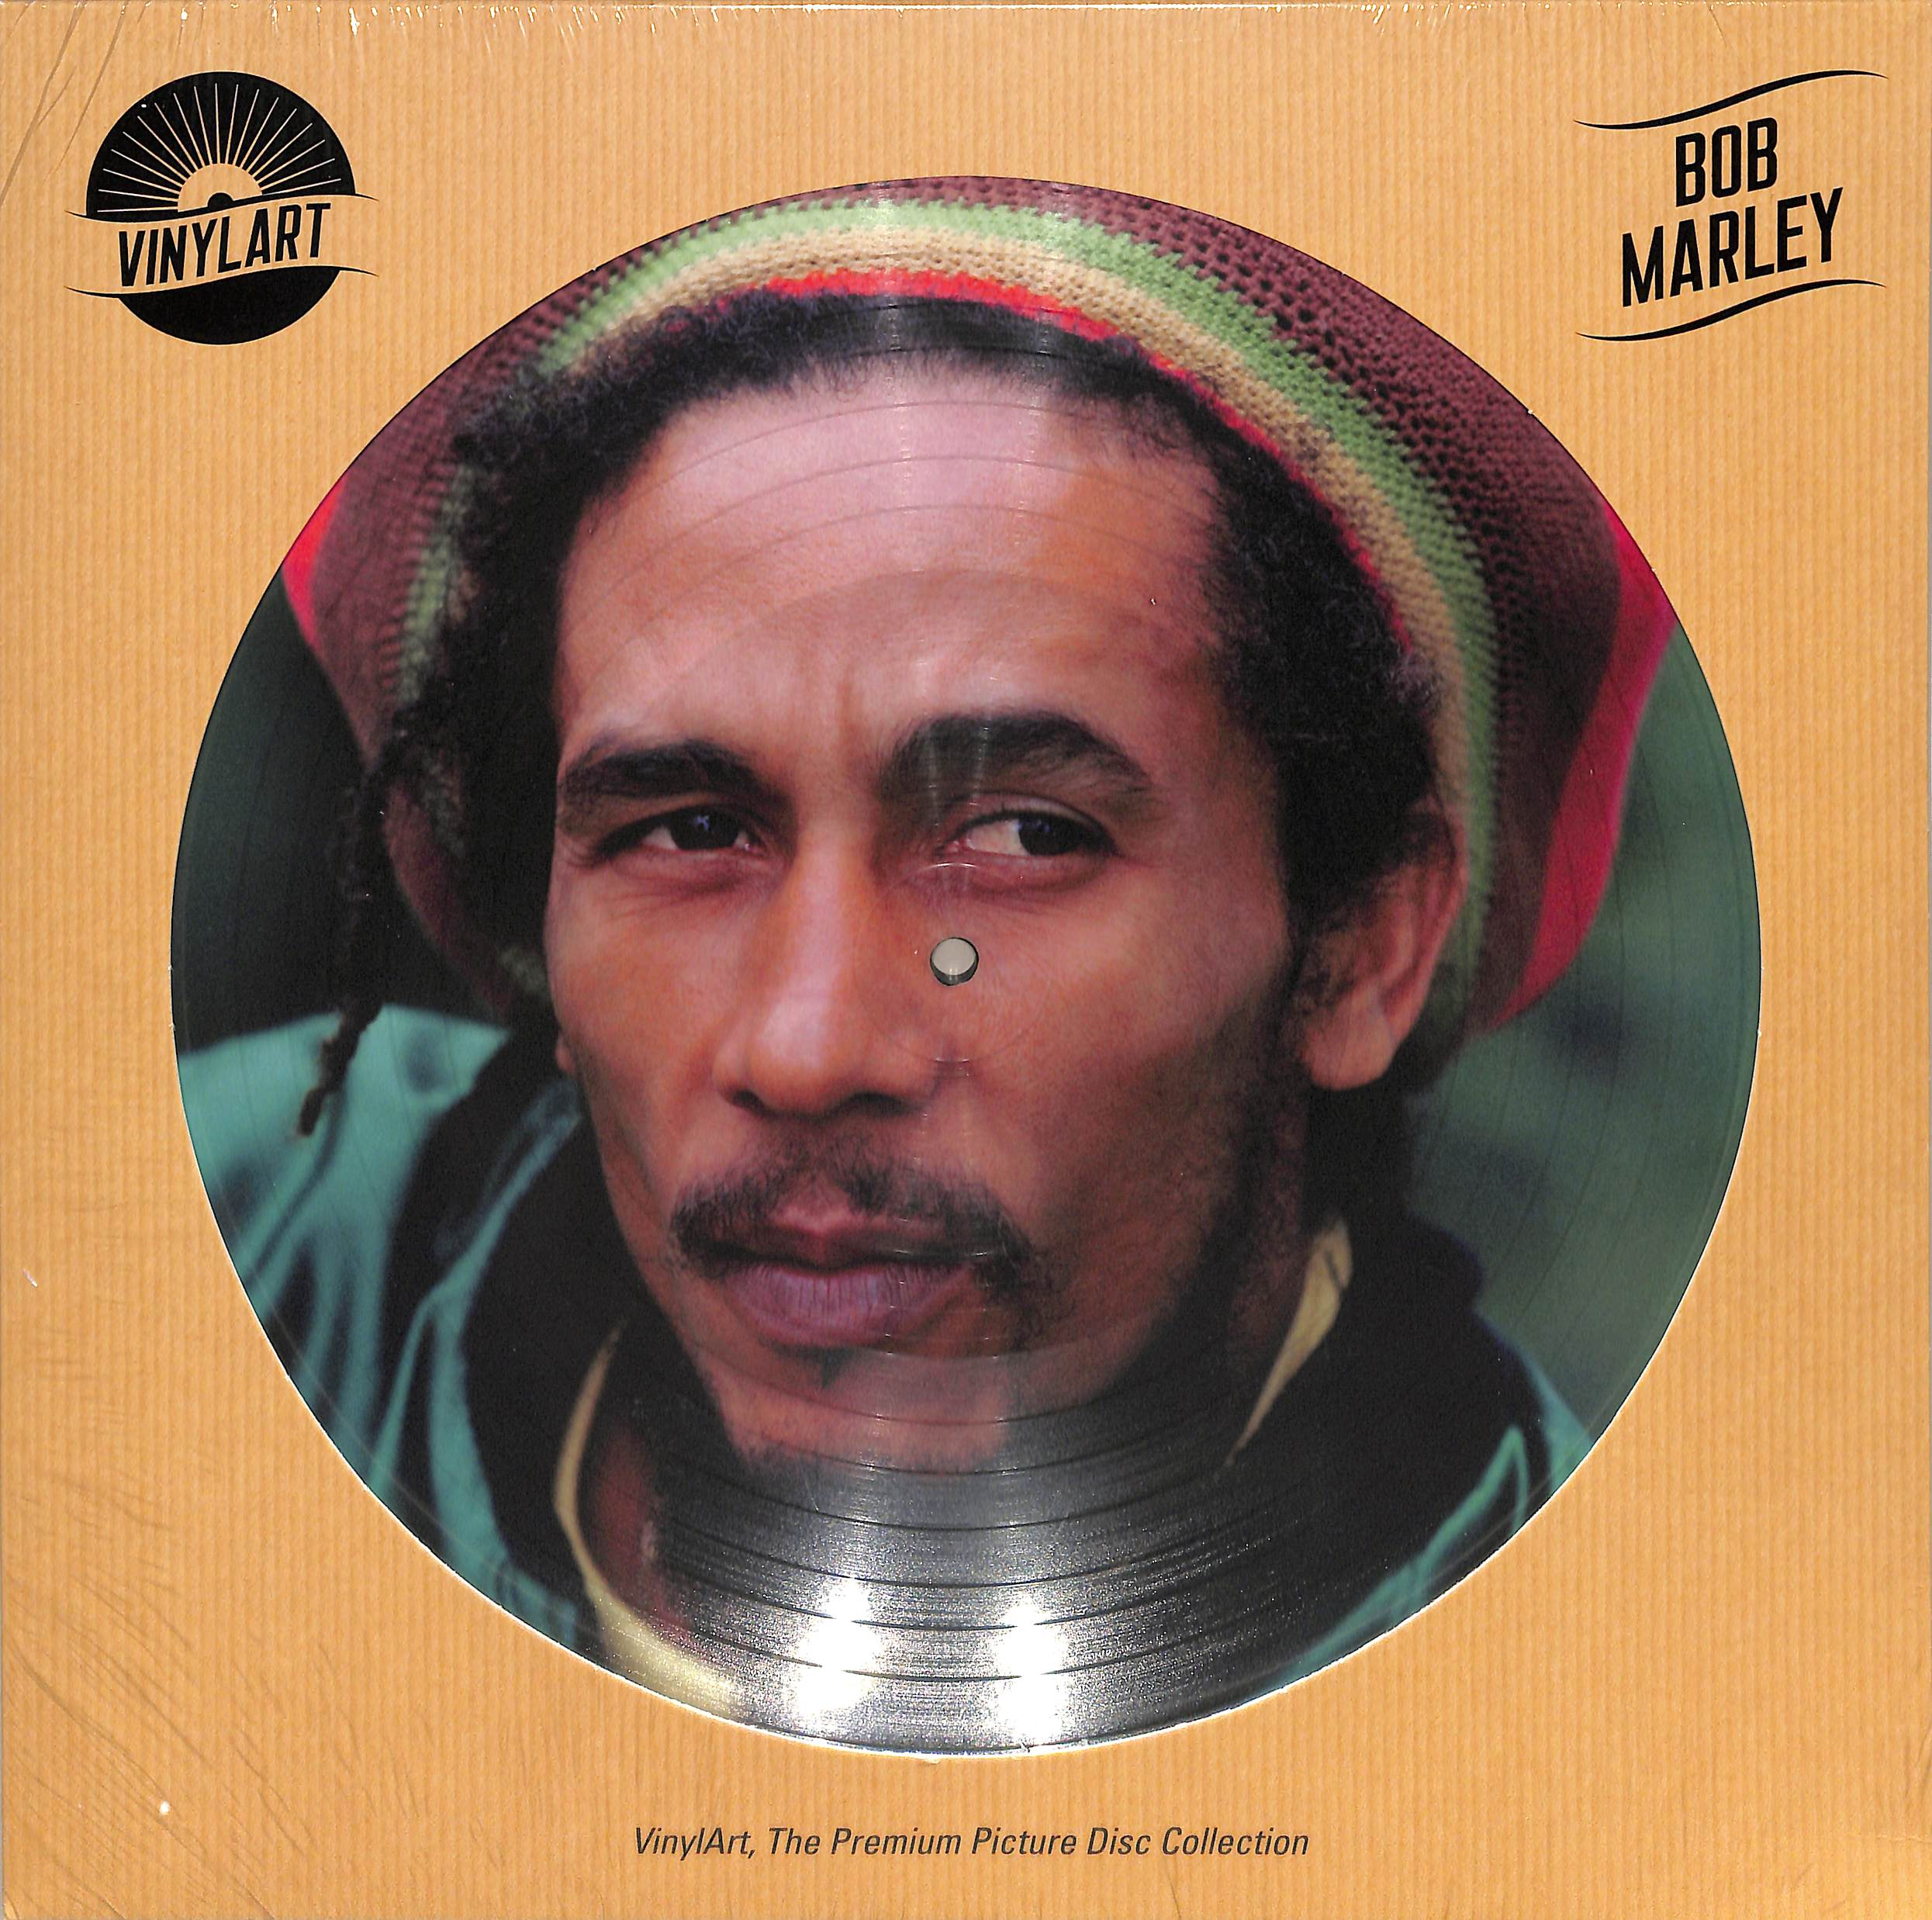 Bob Marley - VINYLART - THE PREMIUM PICTURE DISC COLLECTION